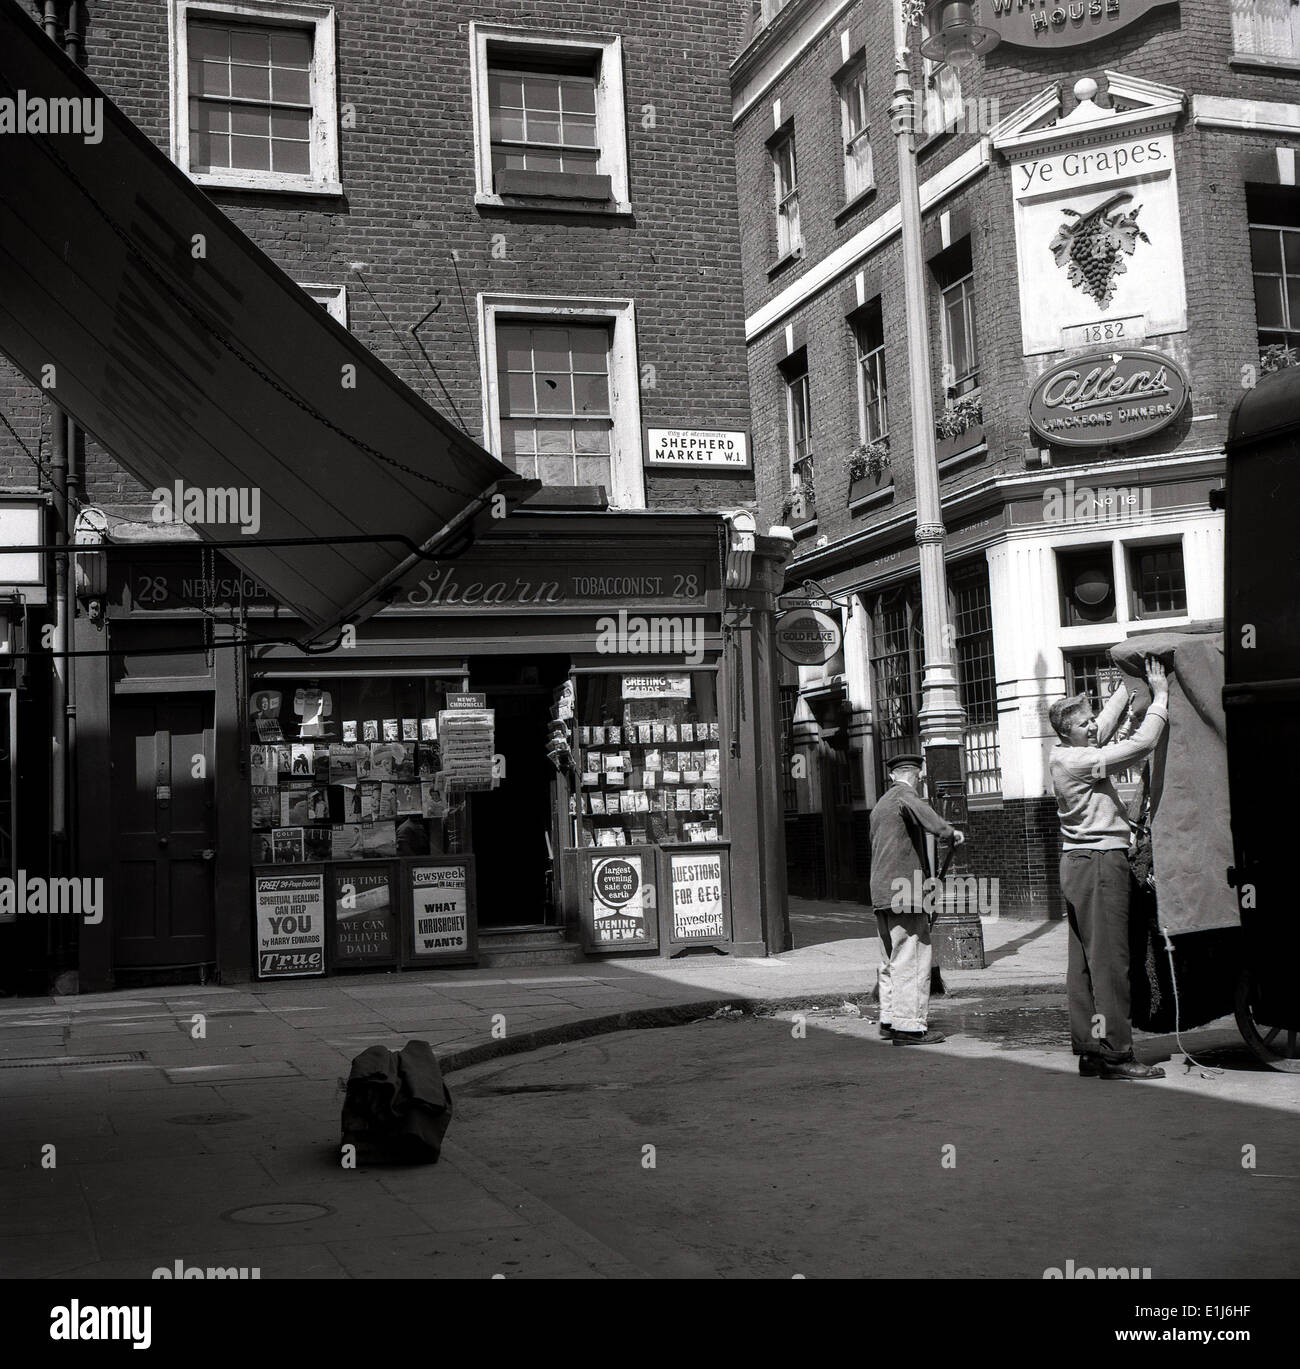 1950s historical picture showing corner shop, a newsagent and an old (1882) Victorian pub, Ye Grapes in Mayfair, Shepherd's Market, London, W1, England. - Stock Image